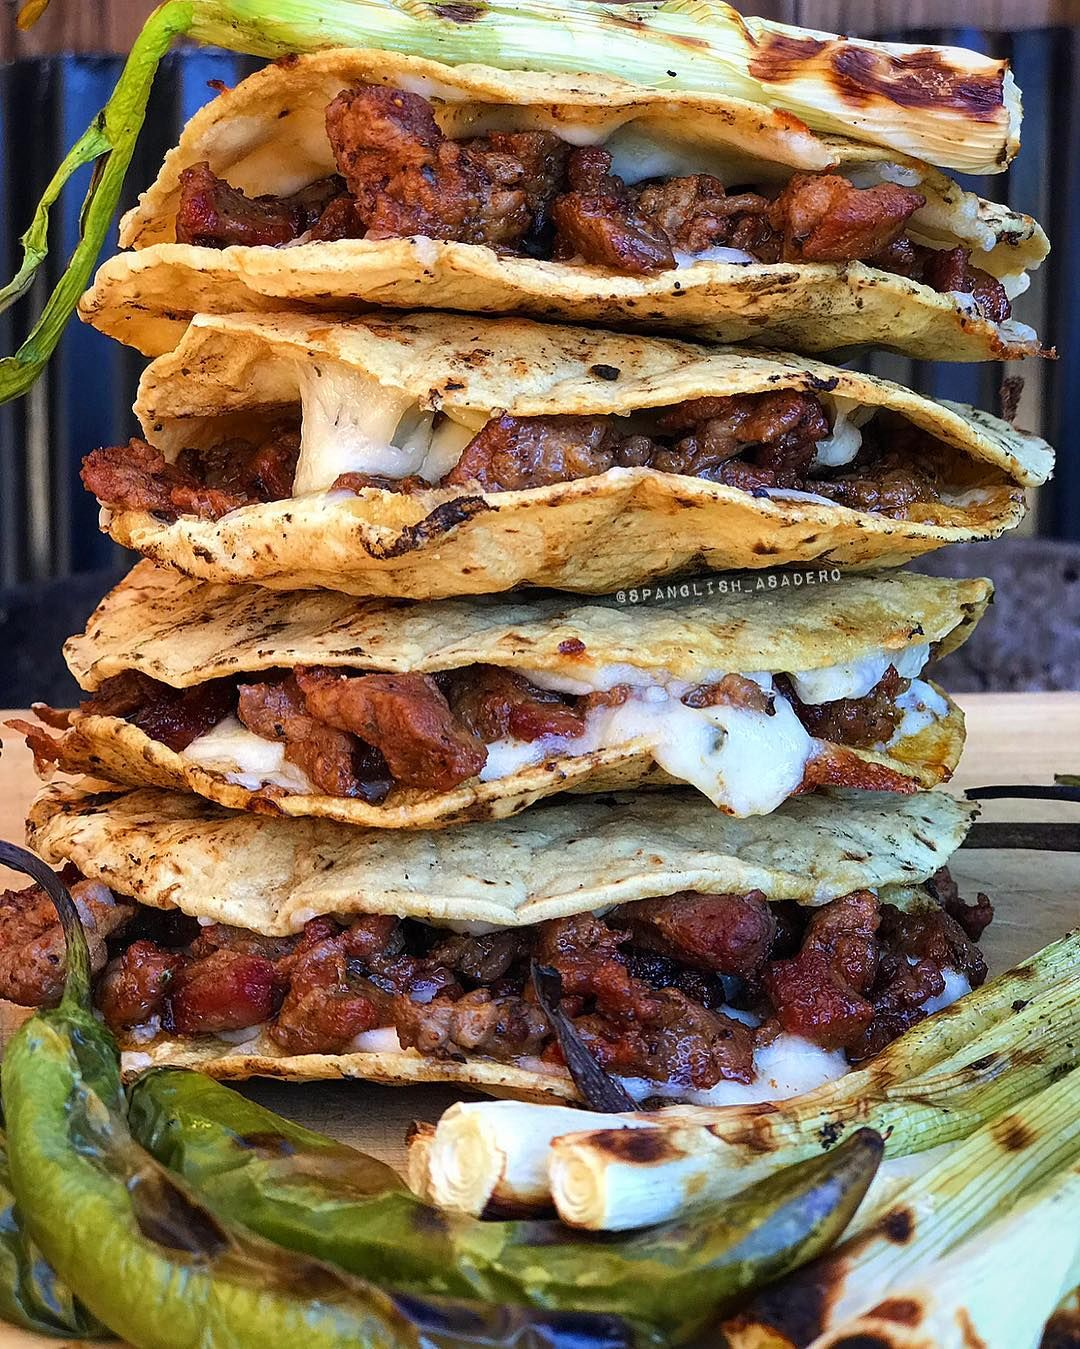 Spanglish Asadero On Instagram A Tower Of Mulitas De Carne Asada Echas Al Carbon Estilo Spanglish Asadero Hechas Con Qu Mexican Food Recipes Food Recipes Hey everyone, in today's video we showed you guys on how to make some delicious mulitas de carne asada, mulitas are a kind. spanglish asadero on instagram a